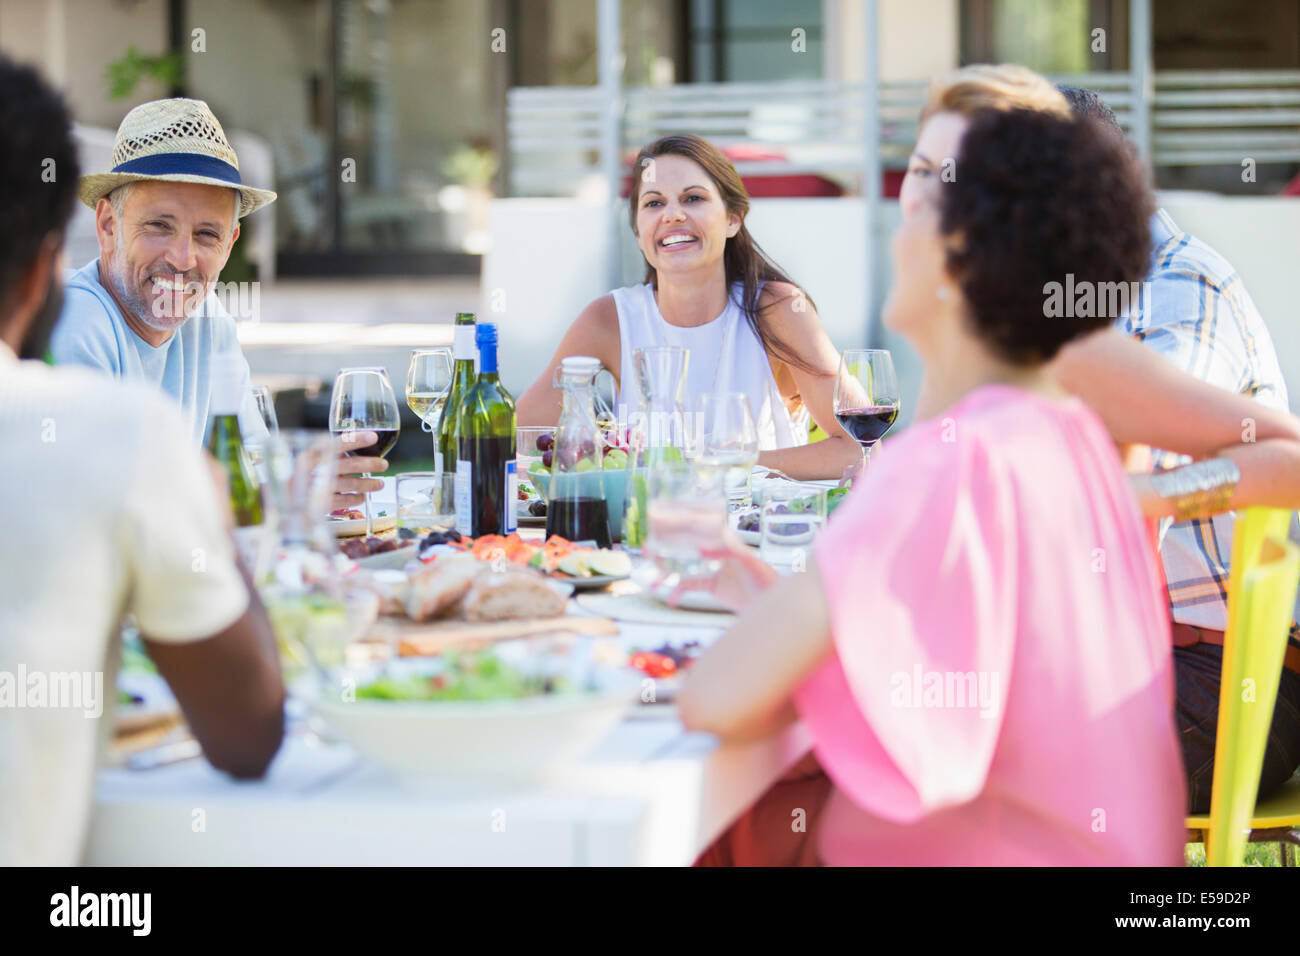 Friends relaxing at table outdoors - Stock Image